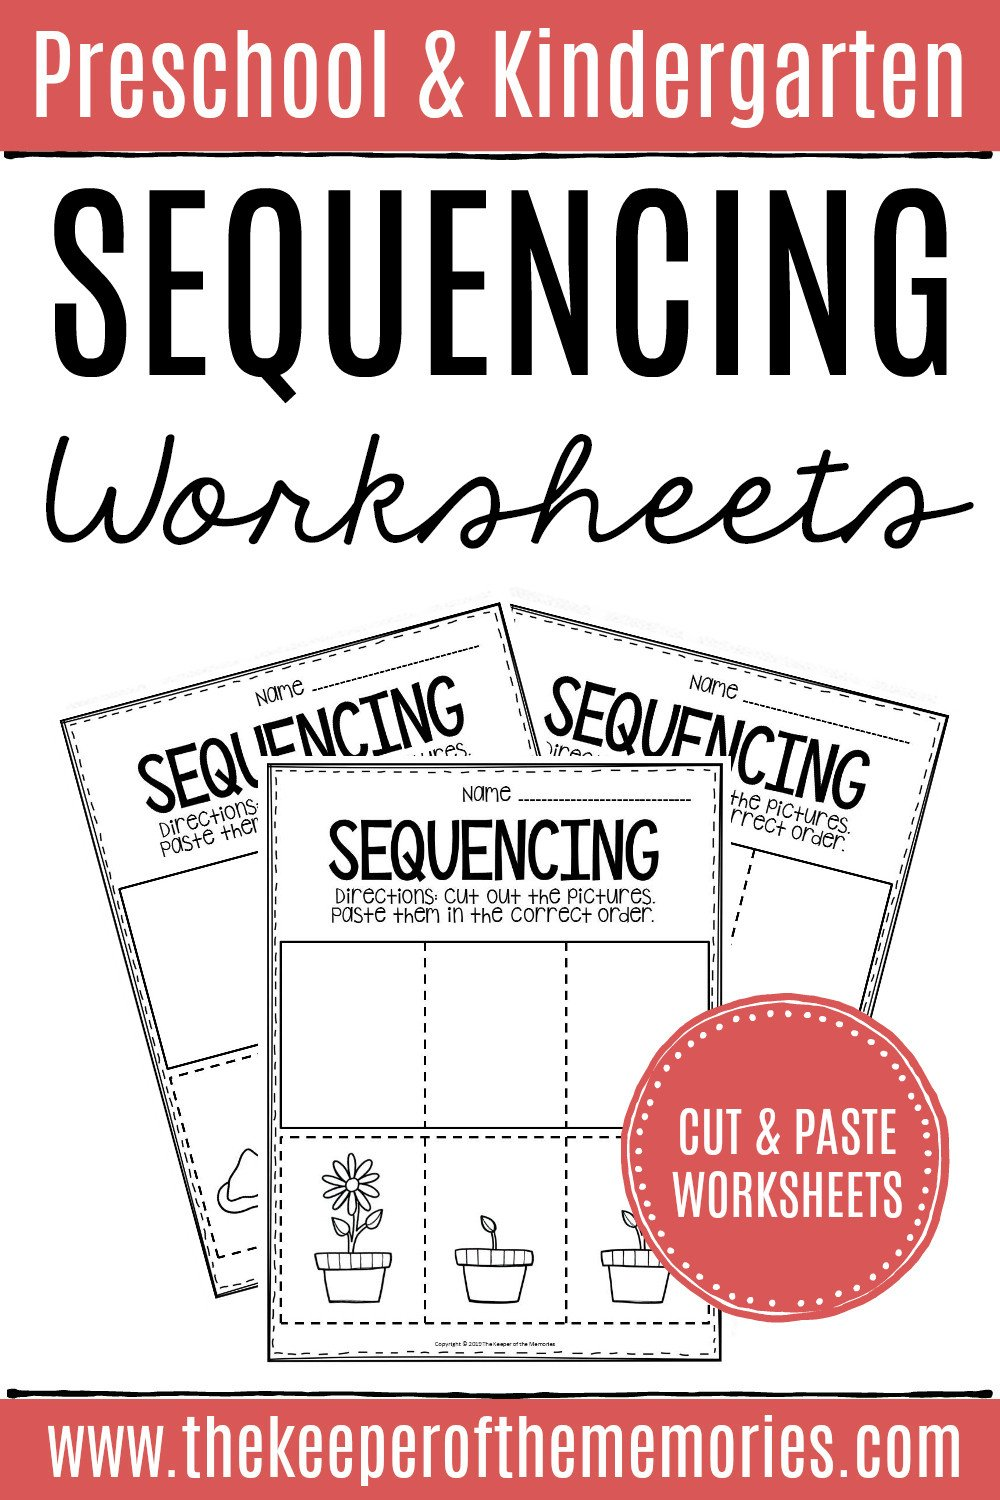 Cut and Paste Sequencing Worksheets 3 Step Sequencing Worksheets the Keeper Of the Memories